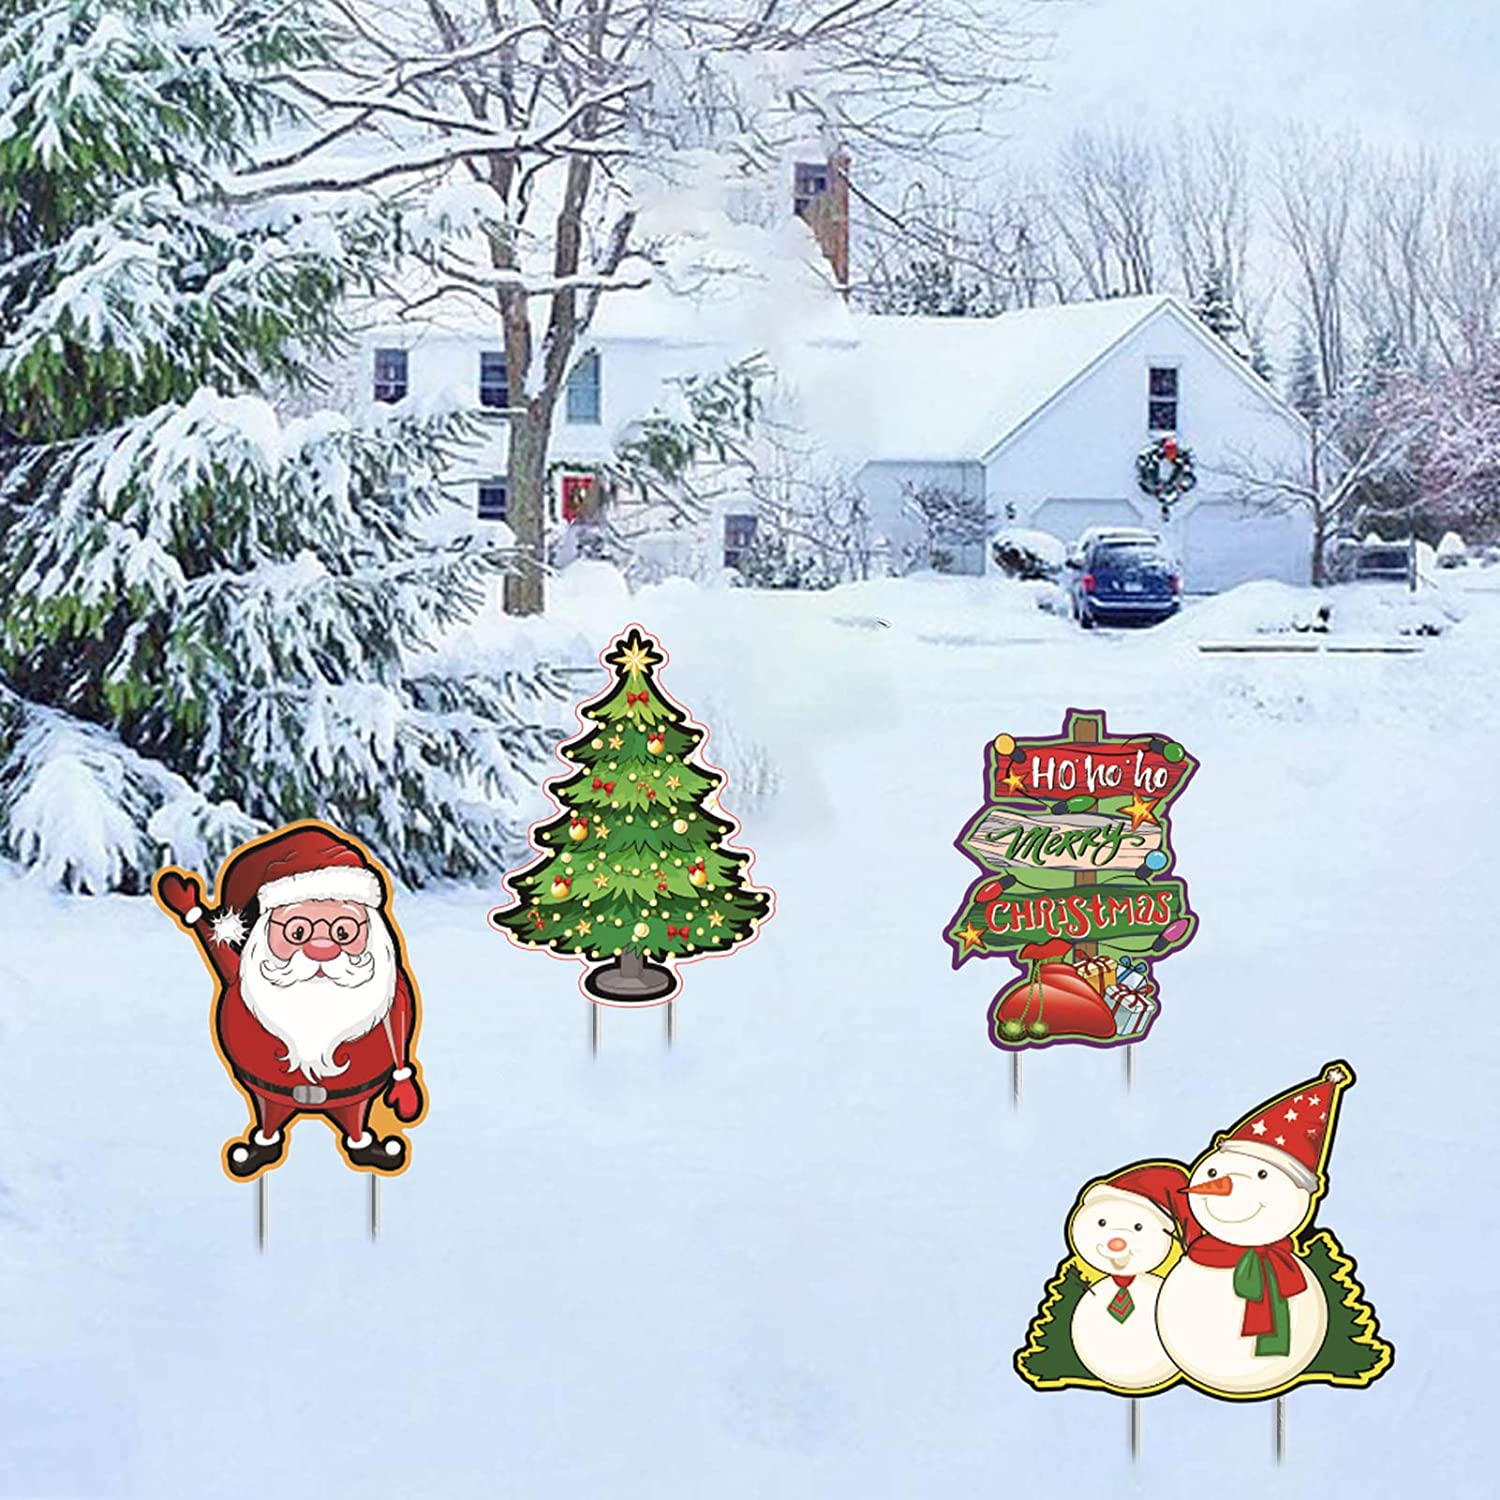 Alycwint Christmas Yard Signs Stakes Outdoor Decorations Xmas Lawn Decor Christmas Tree, Santa Claus, Signpost, Snowman,for Xmas Holiday Party Home Garden Pathway Party Winter Wonderland Ornaments